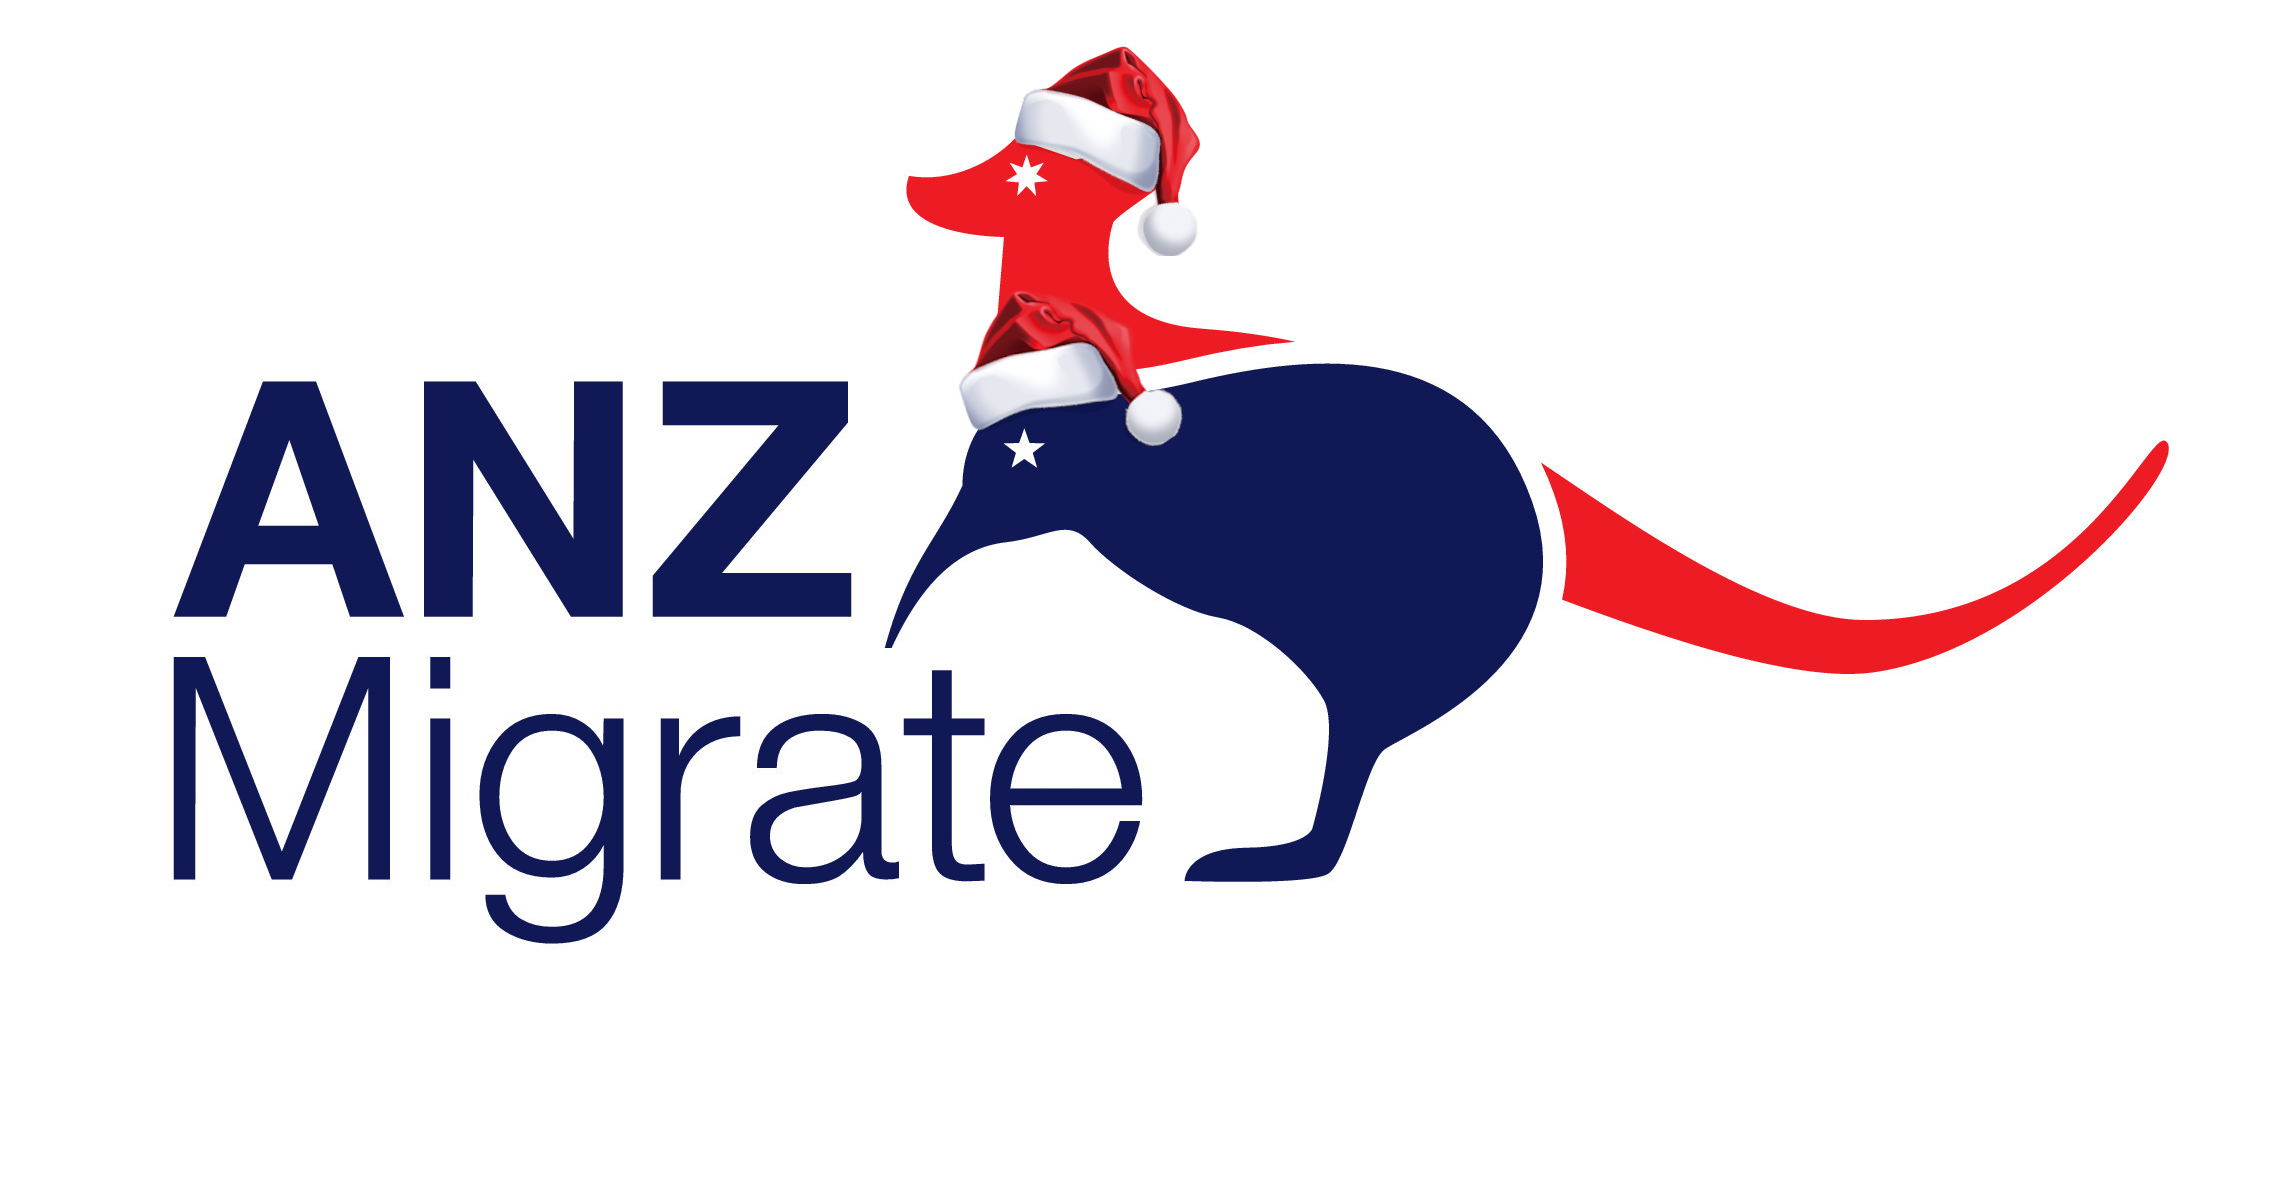 ANZMigrate